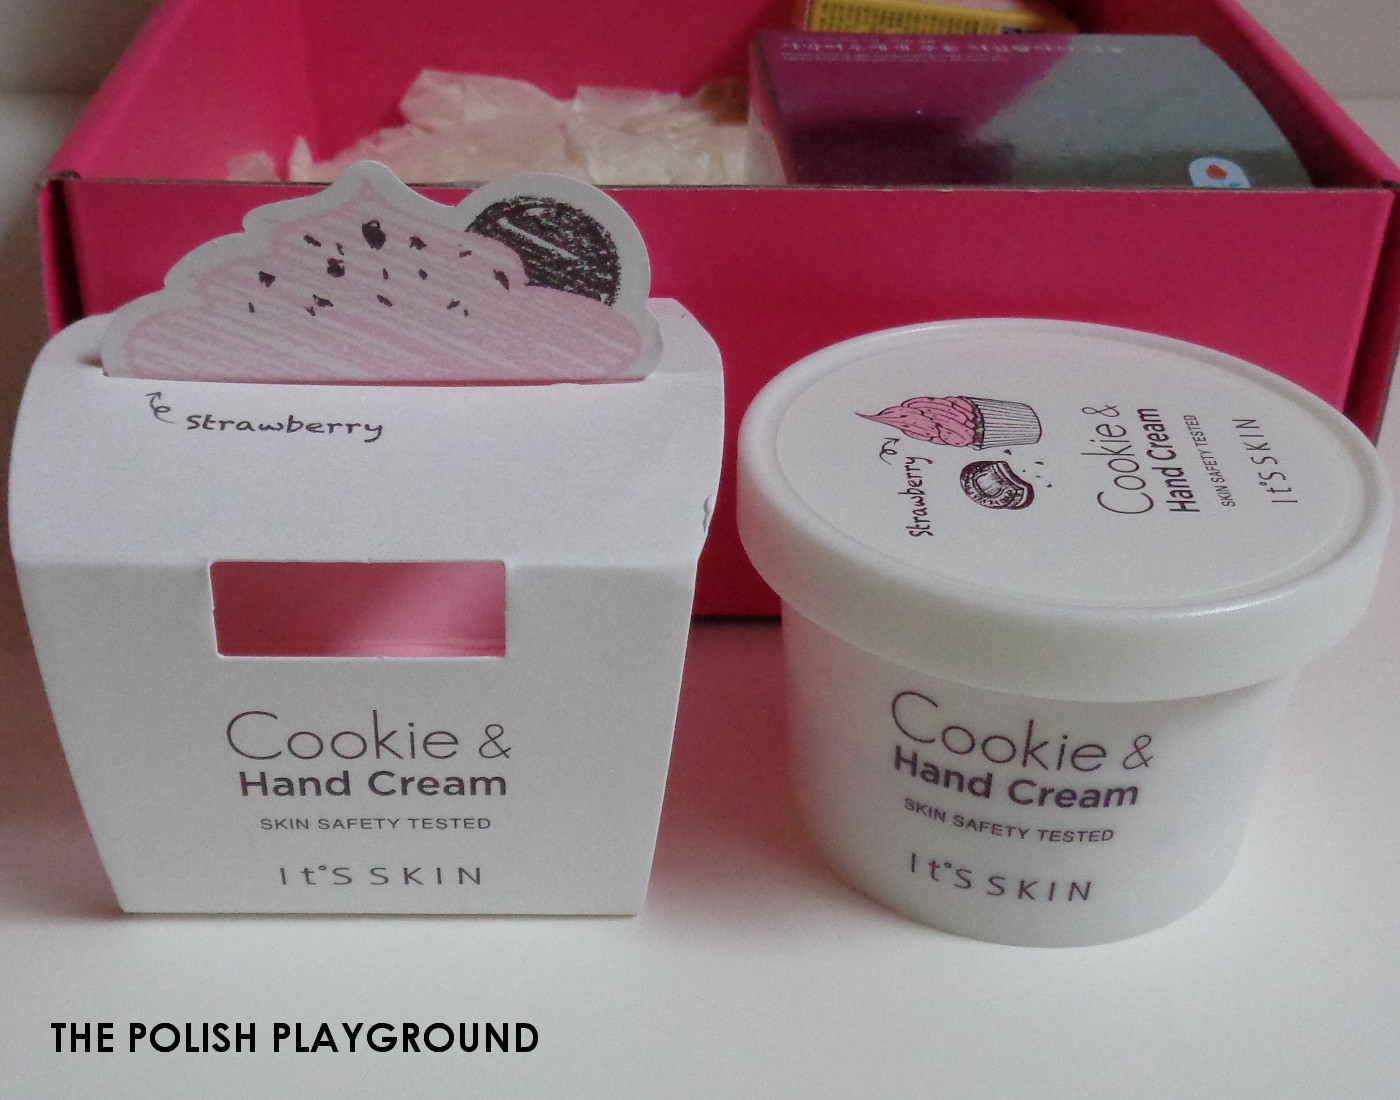 Memebox Special #47 My Dessert Box Unboxing - It's Skin Cookie & Hand Cream in Strawberry